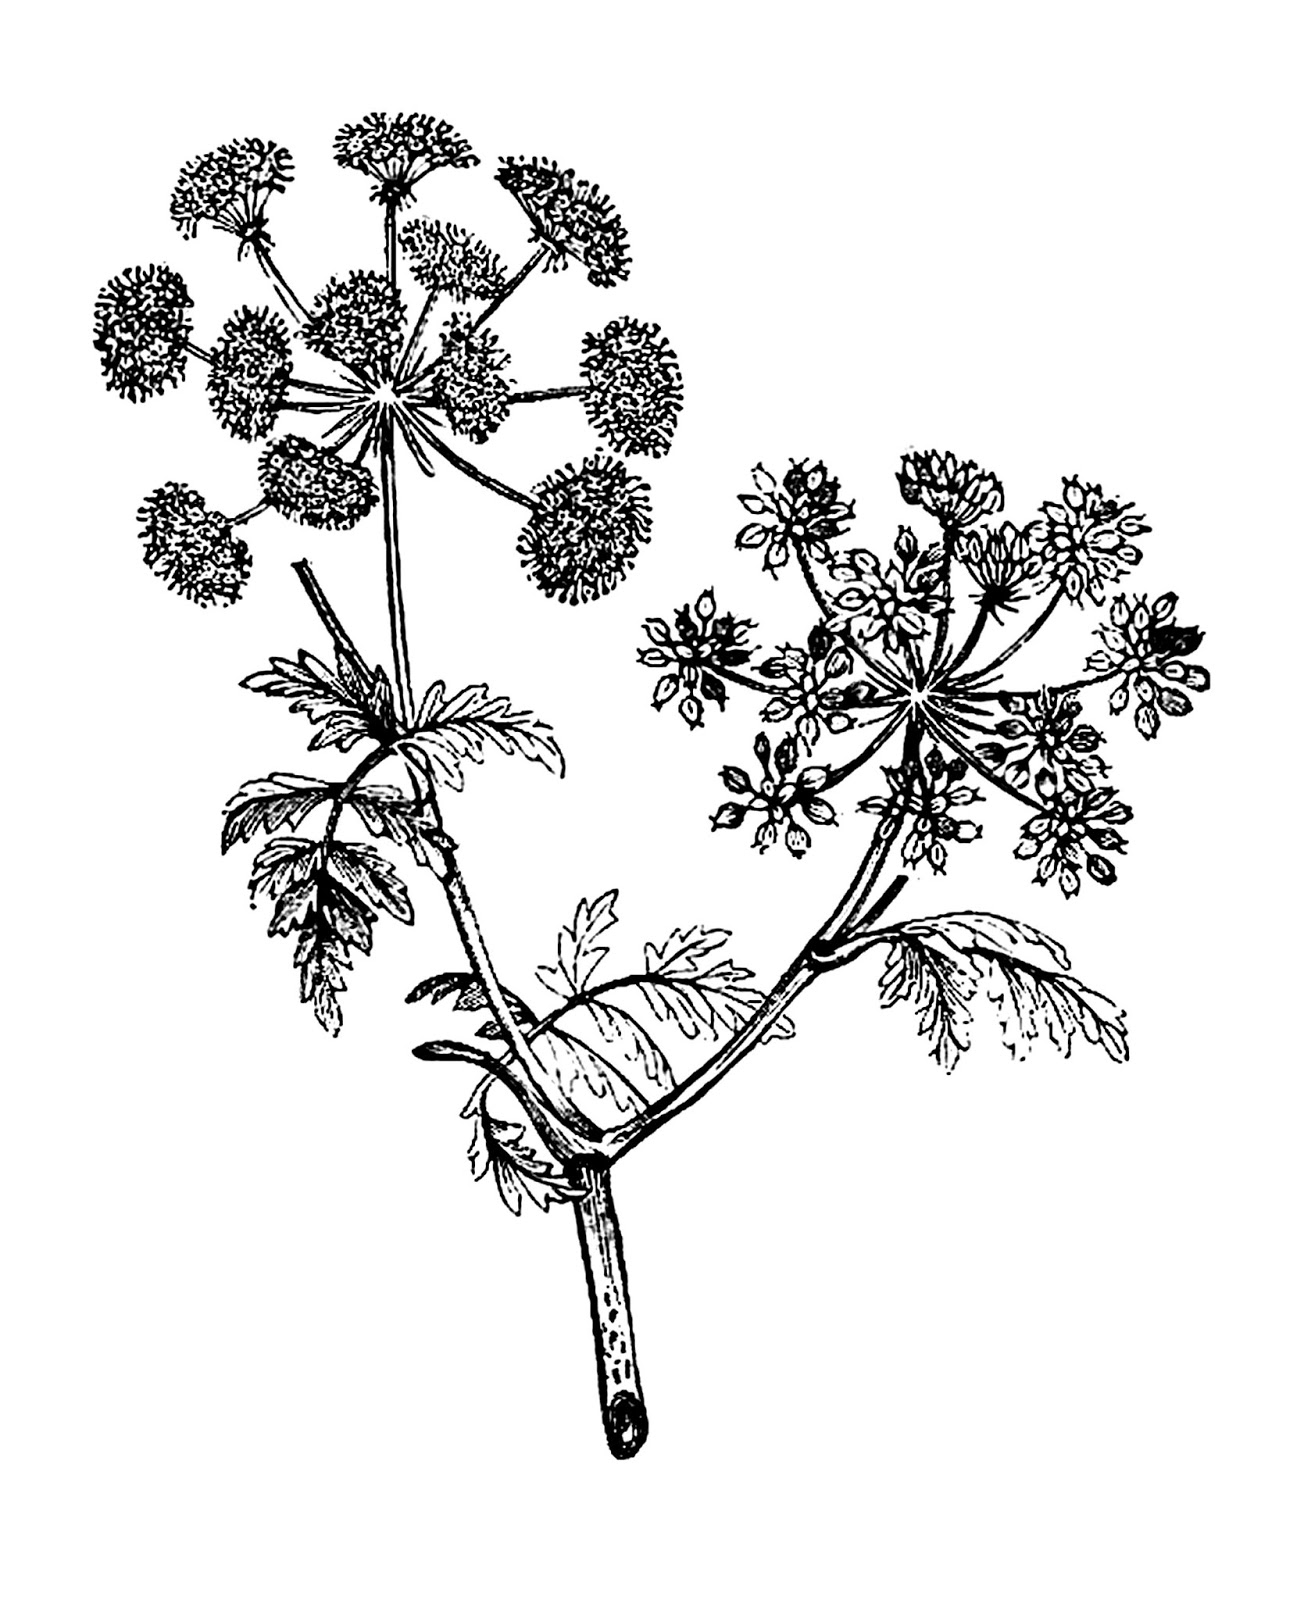 Botanical illustration black and white - photo#18